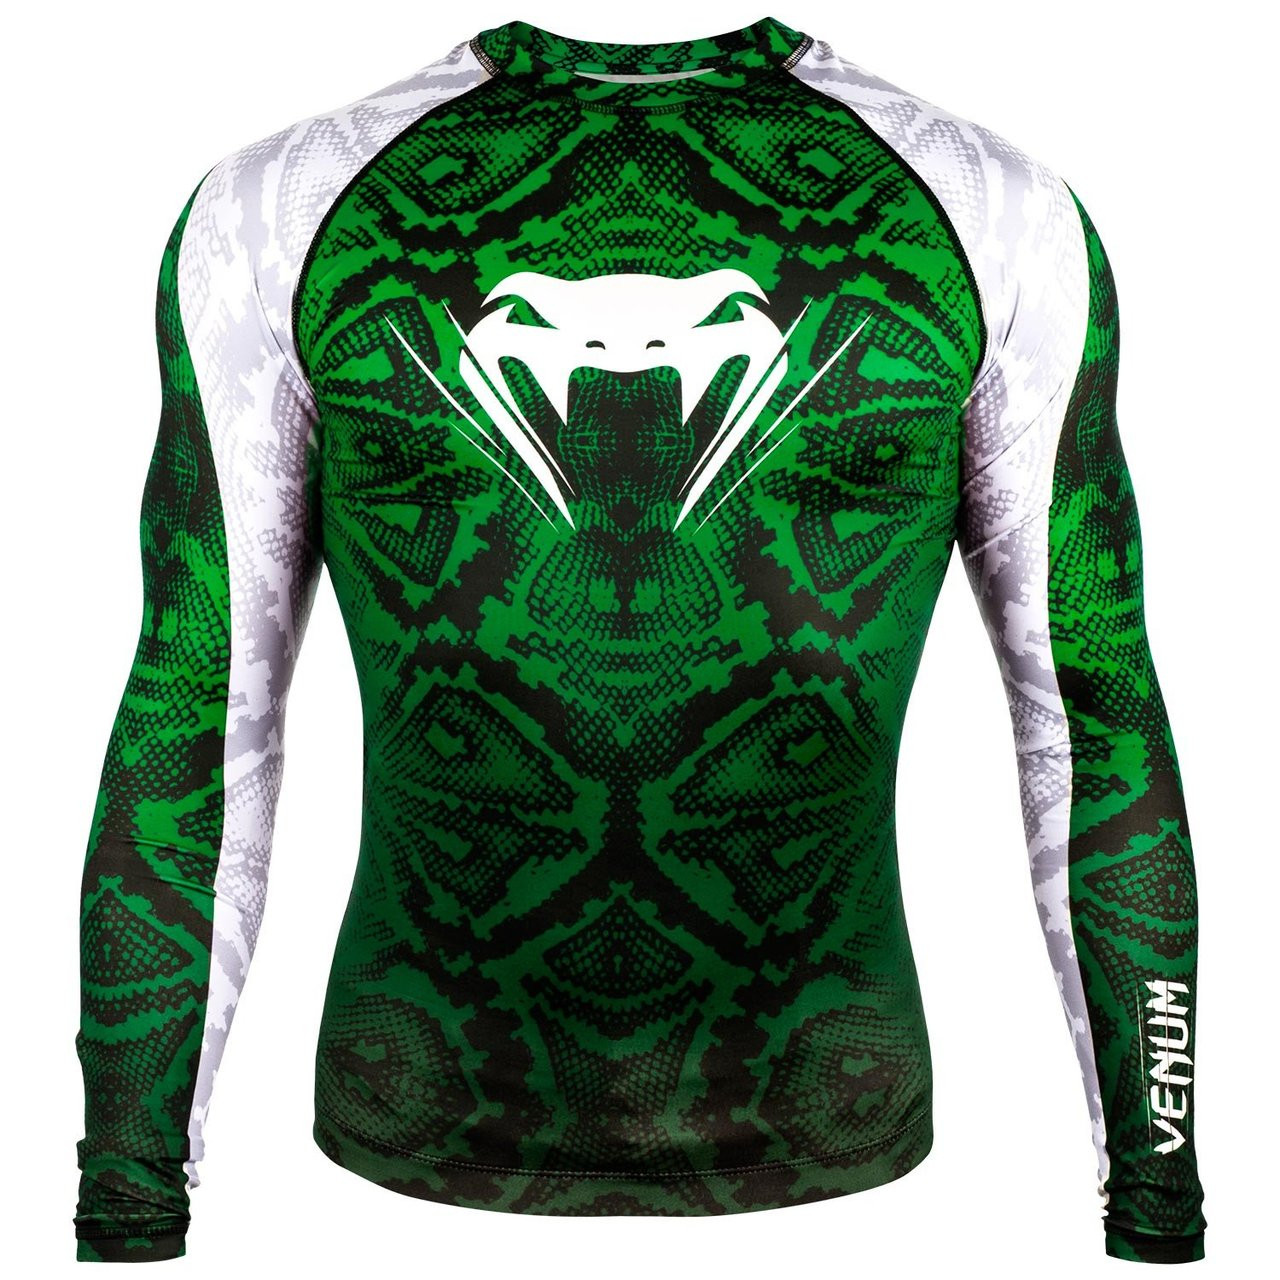 Venum Amazonia 5 Rashguard Longsleeve (Green) available at www.thejiujitsushop.com  Enjoy Free Shipping from The Jiu Jitsu Shop today!